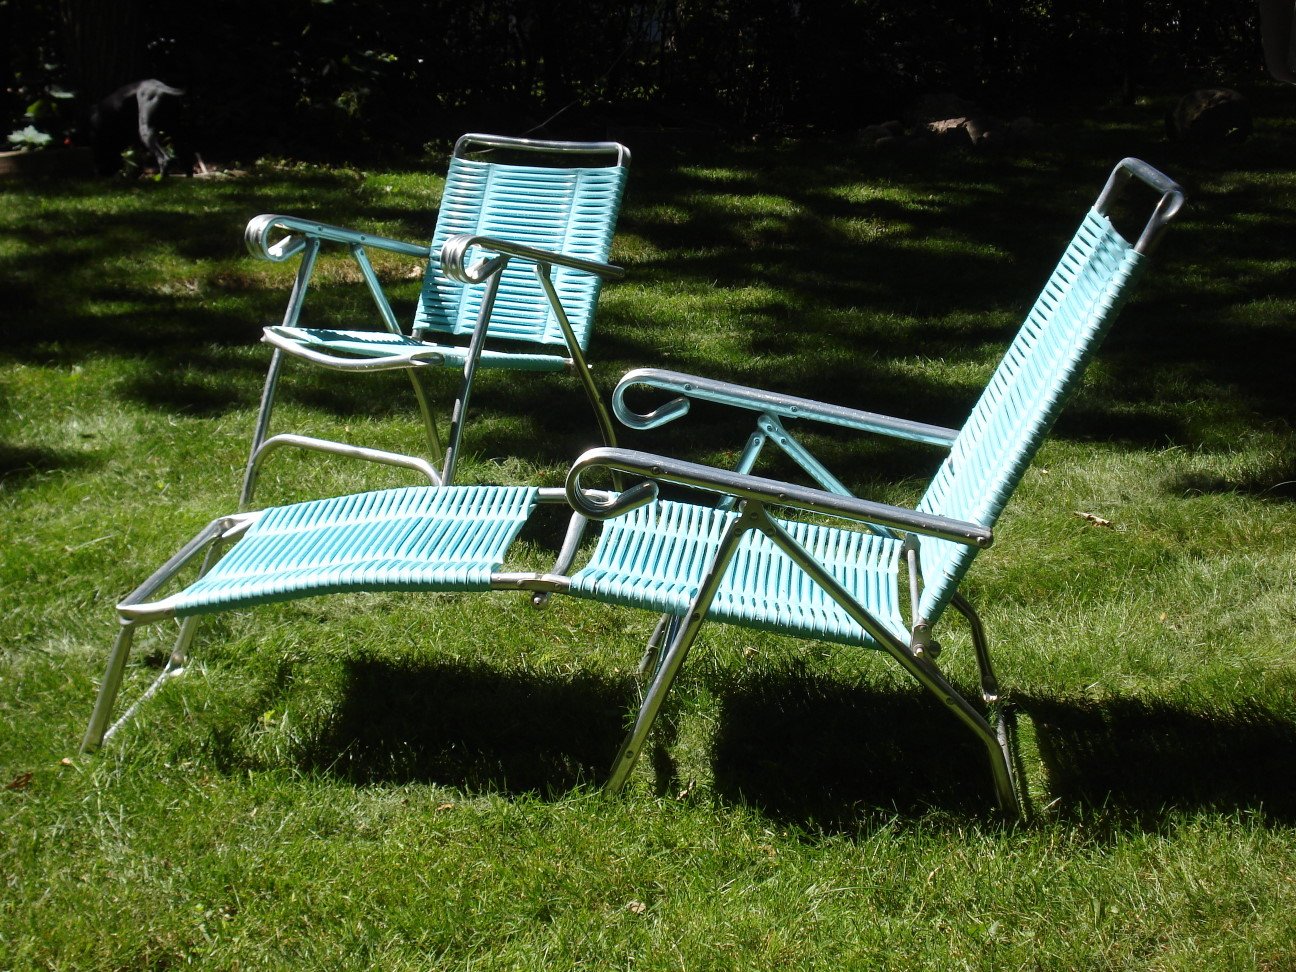 Lawn Chair Lounger Retro Lawn Chair And Lounge Erik G Warner